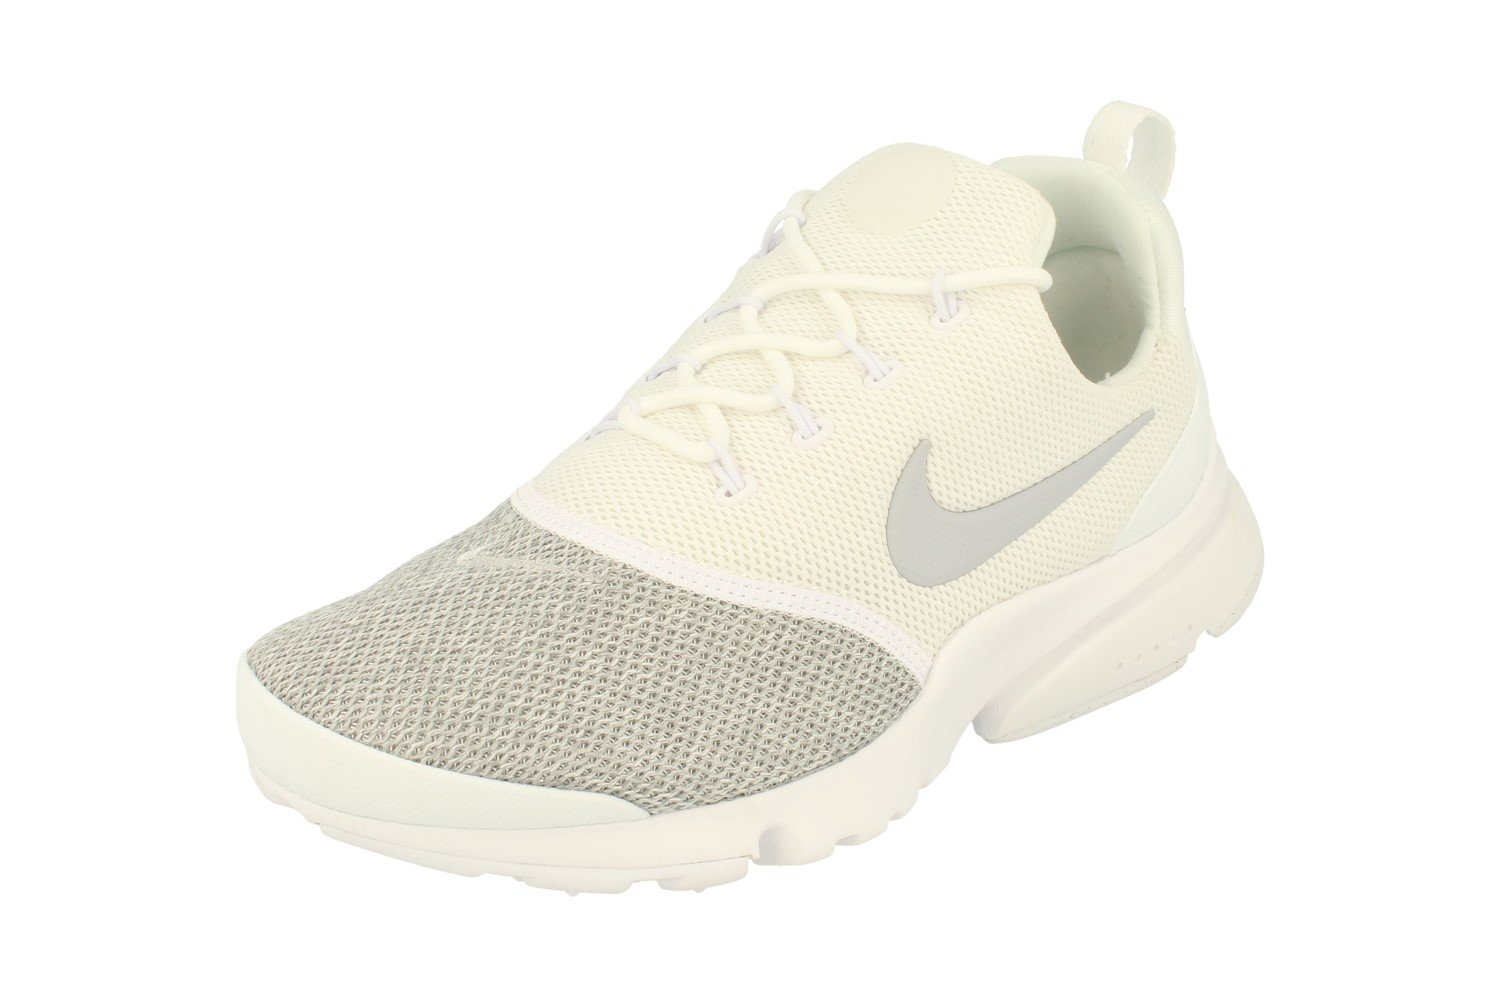 f2d4b06ca1b0 Galleon - Nike Womens Presto Fly SE Womens Running Trainers 910570 Sneakers  Shoes (UK 2.5 US 5 EU 35.5